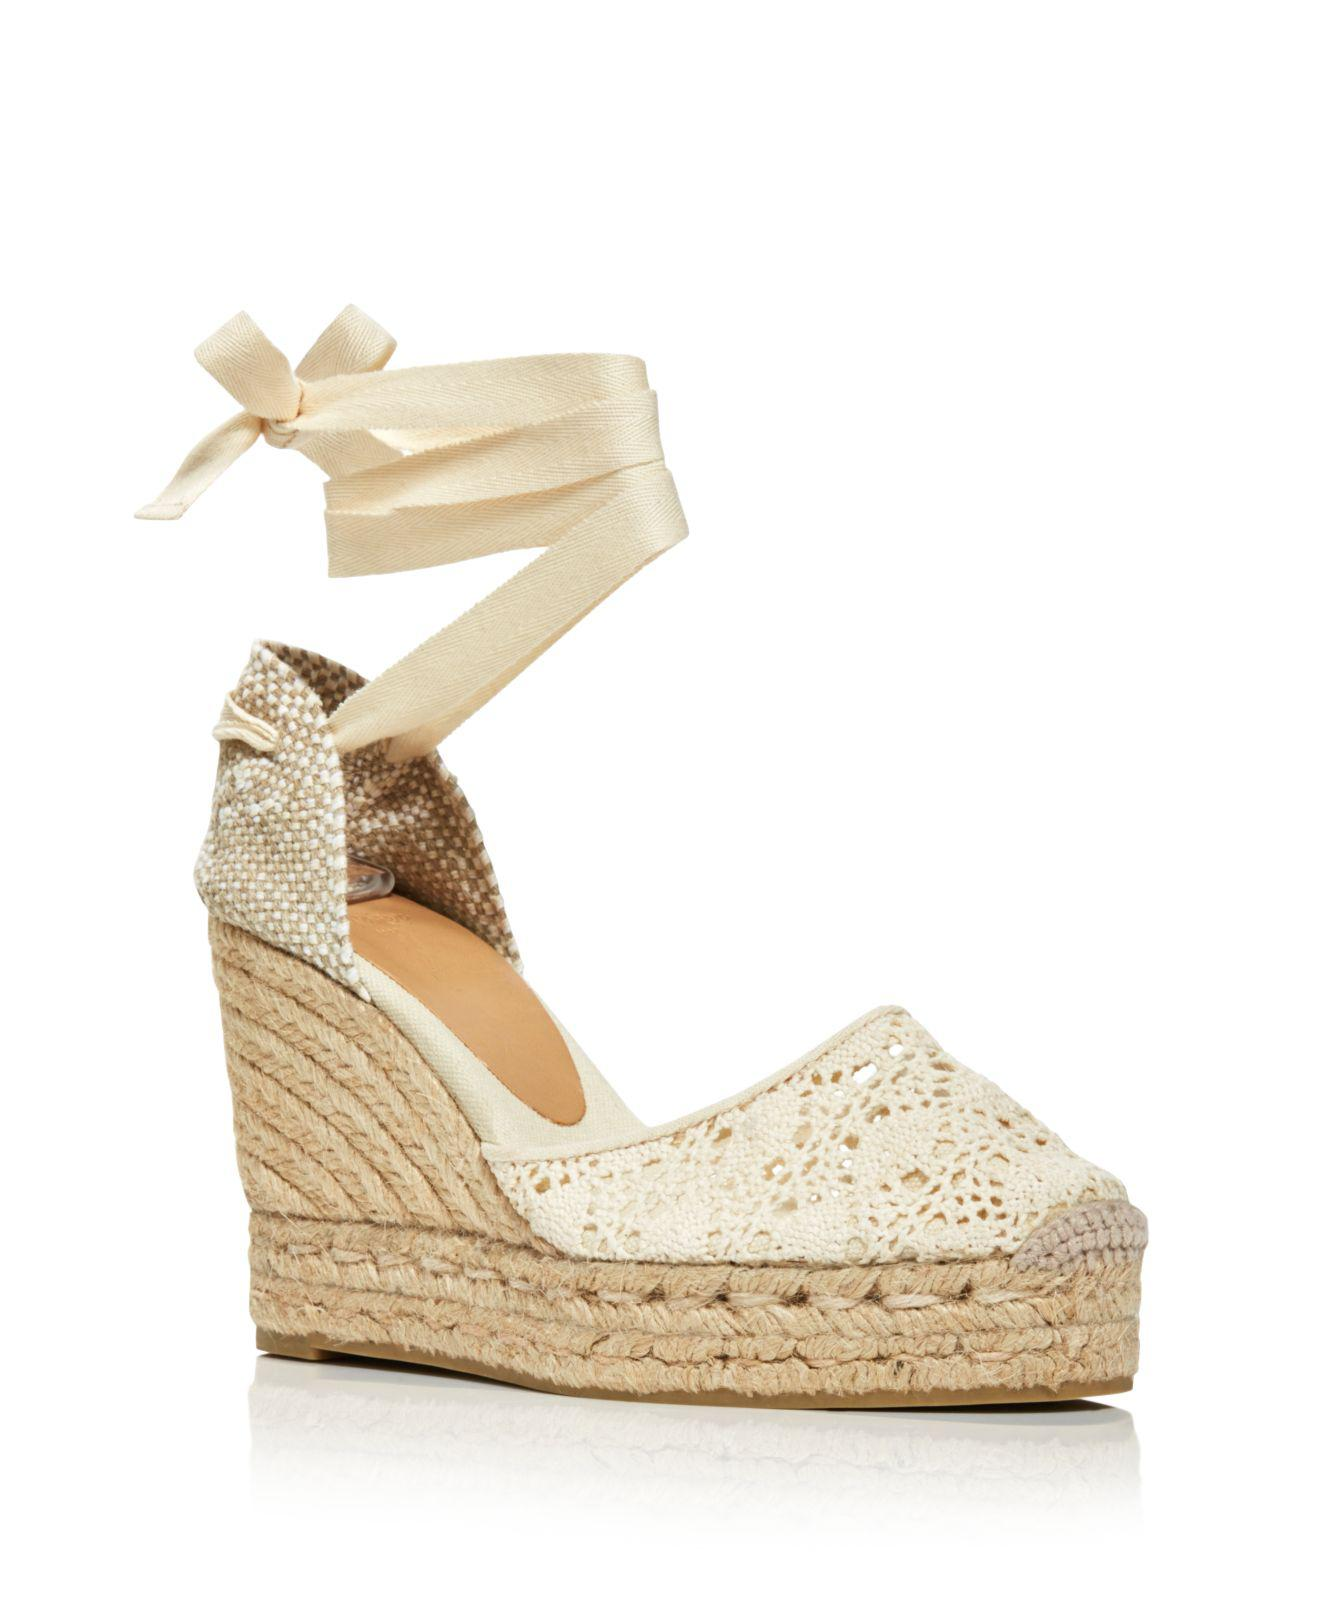 Castaner Women's Lula Ankle Tie Platform Wedge Espadrille Sandals Aaa Quality Discount Clearance 2018 New Clearance Online Fake hasXNk